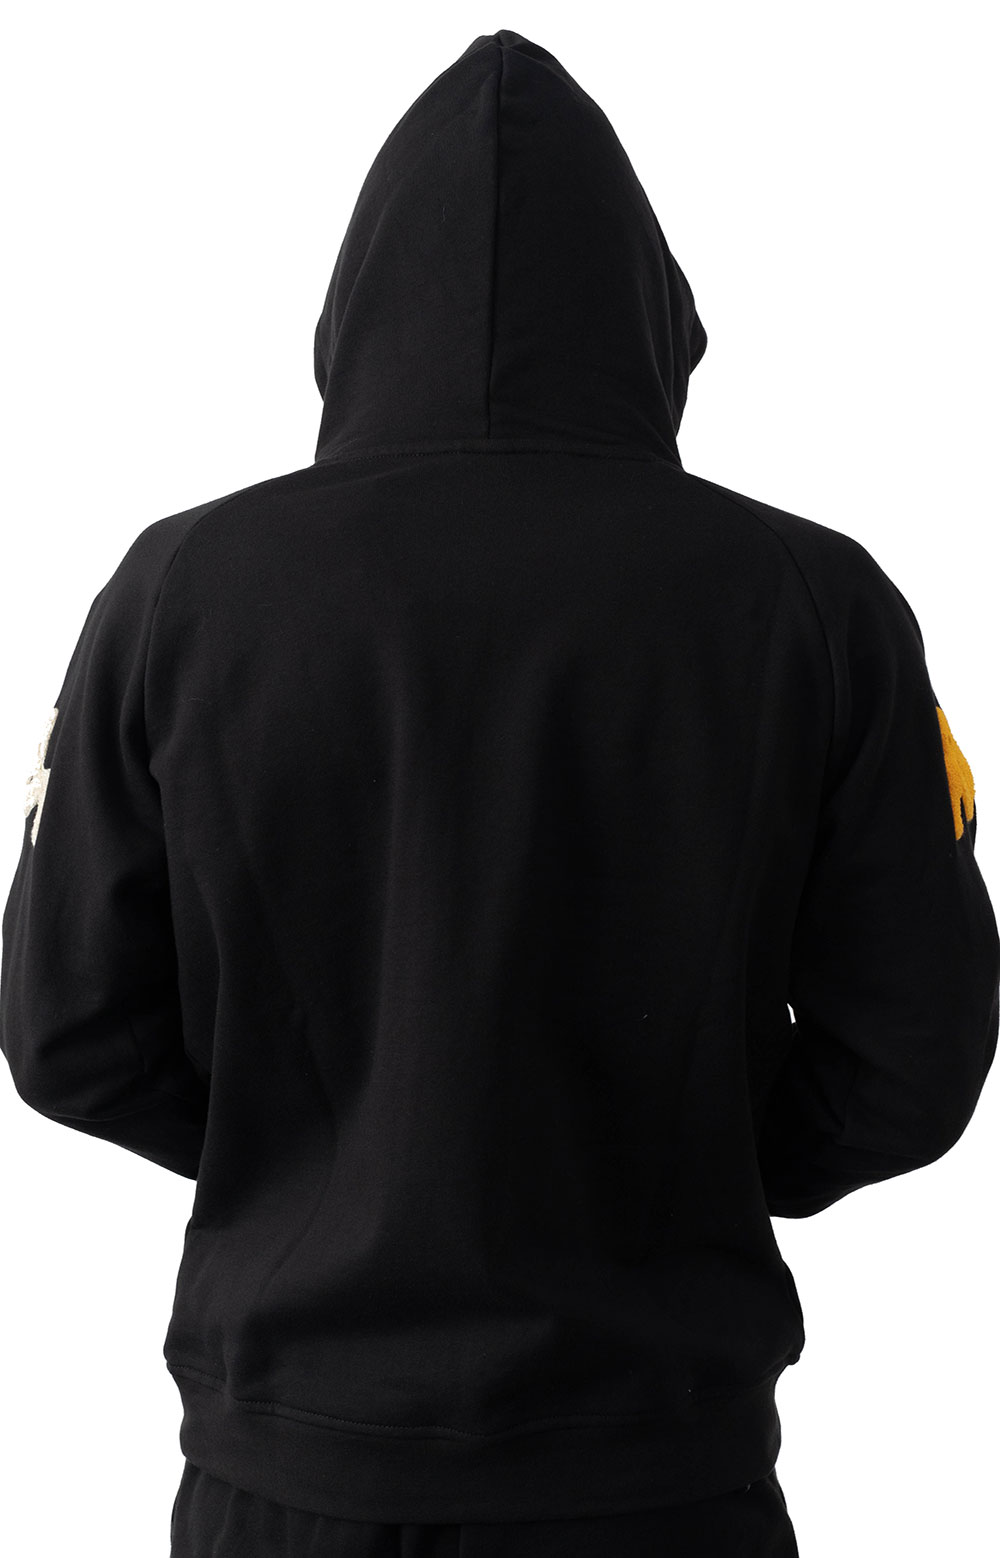 Authentic Katio Pullover Hoodie - Black/Red 3